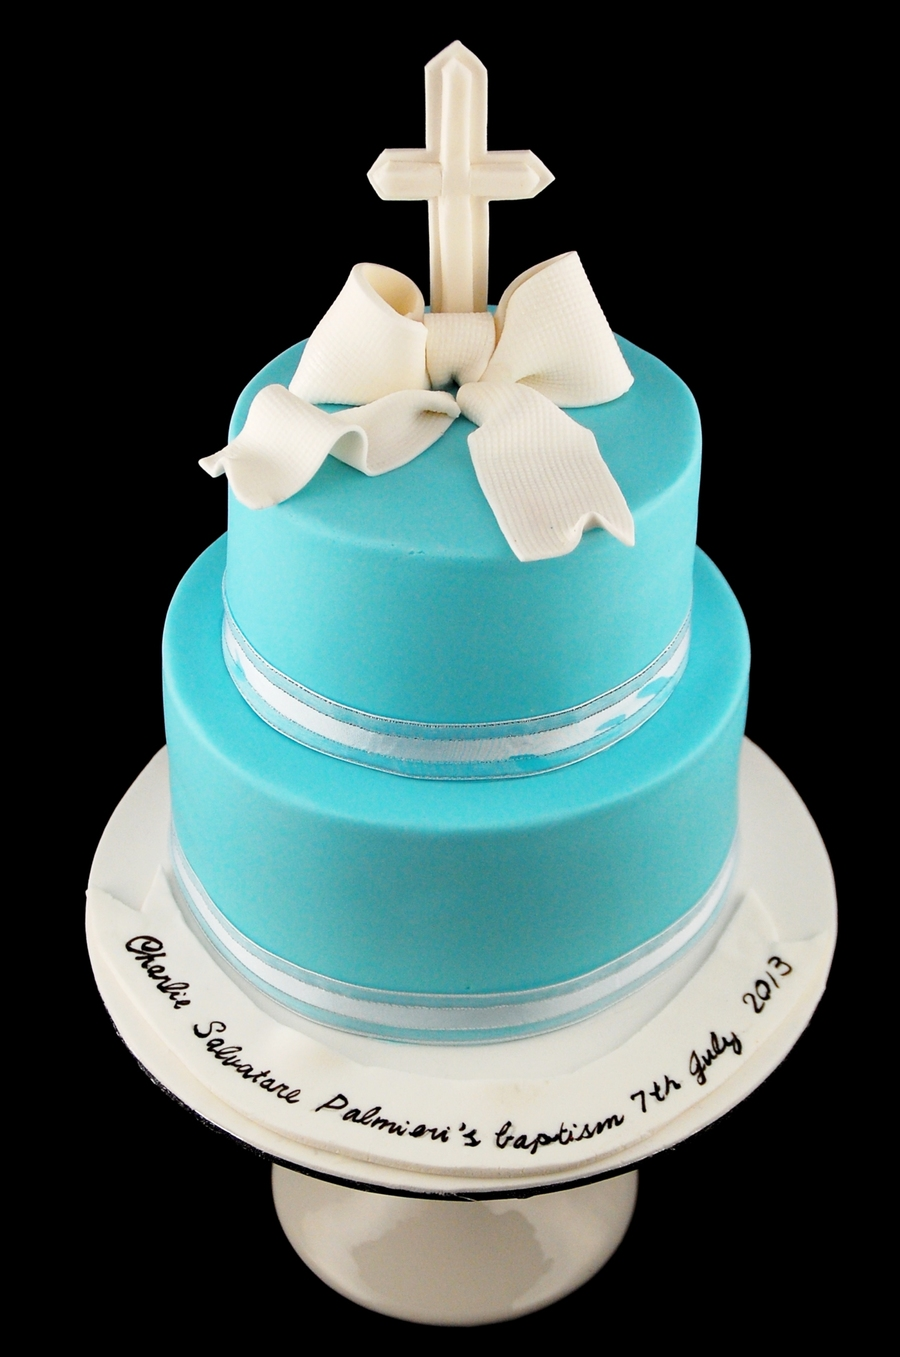 Cake Ideas For A Baptism : Simple Christening Baptism Cake For A Baby Boy ...